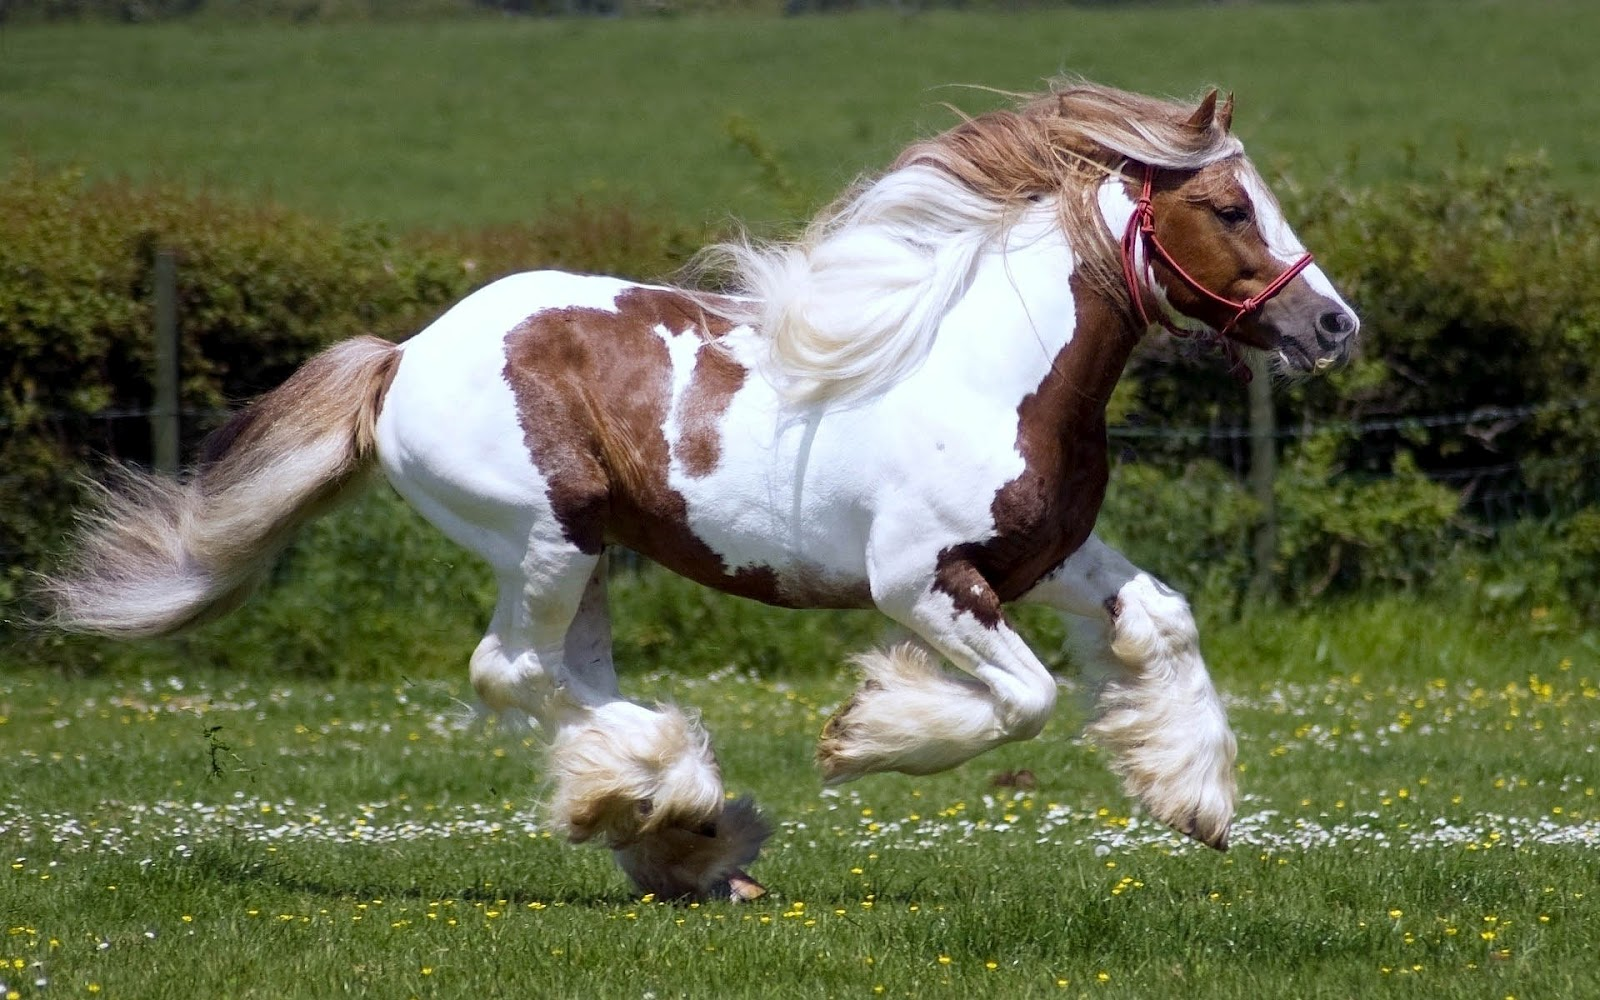 The Wallpapers: HD Horses